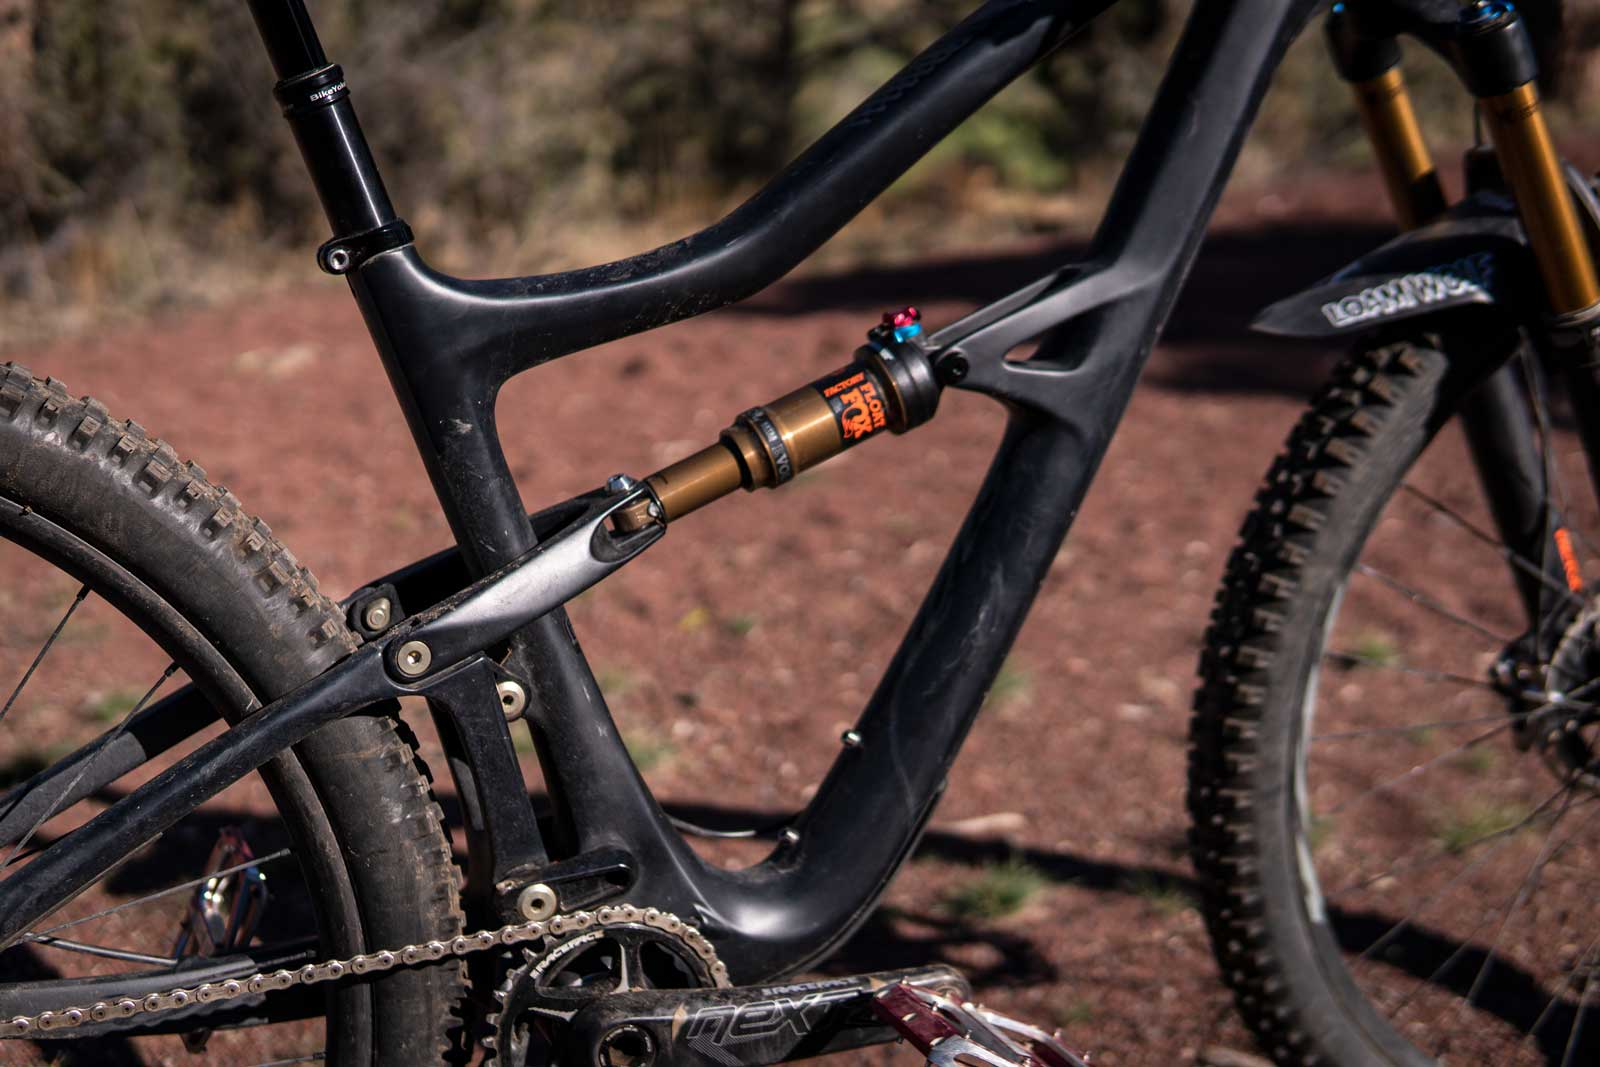 Ibis Ripley V4 suspension